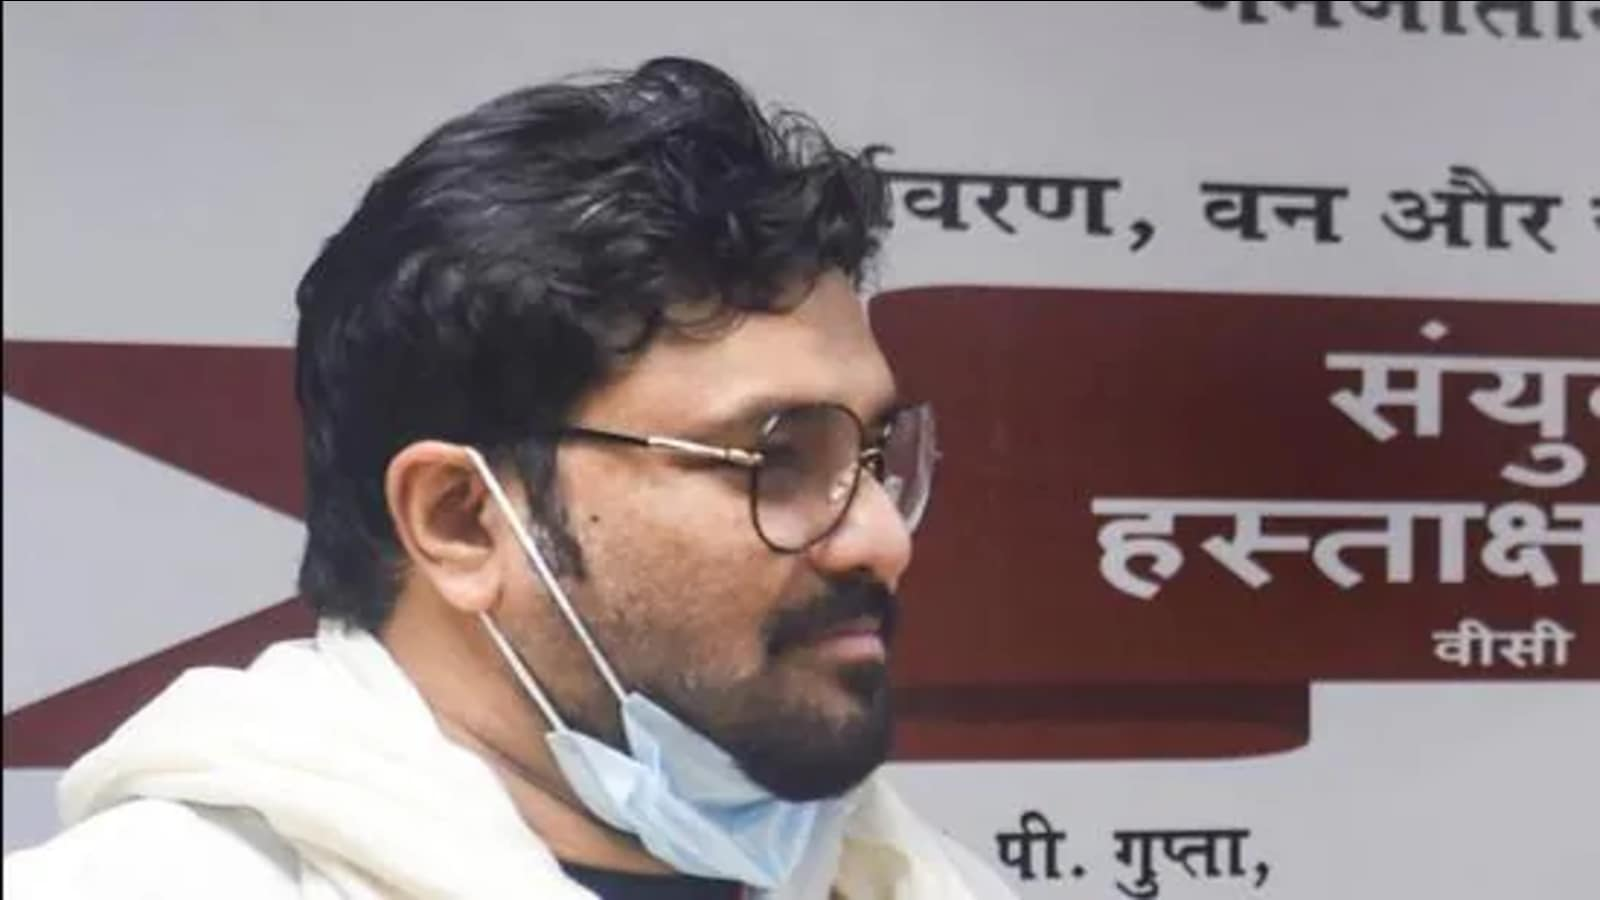 Babul Supriyo doesn't want to campaign for Mamata Banerjee in bypoll